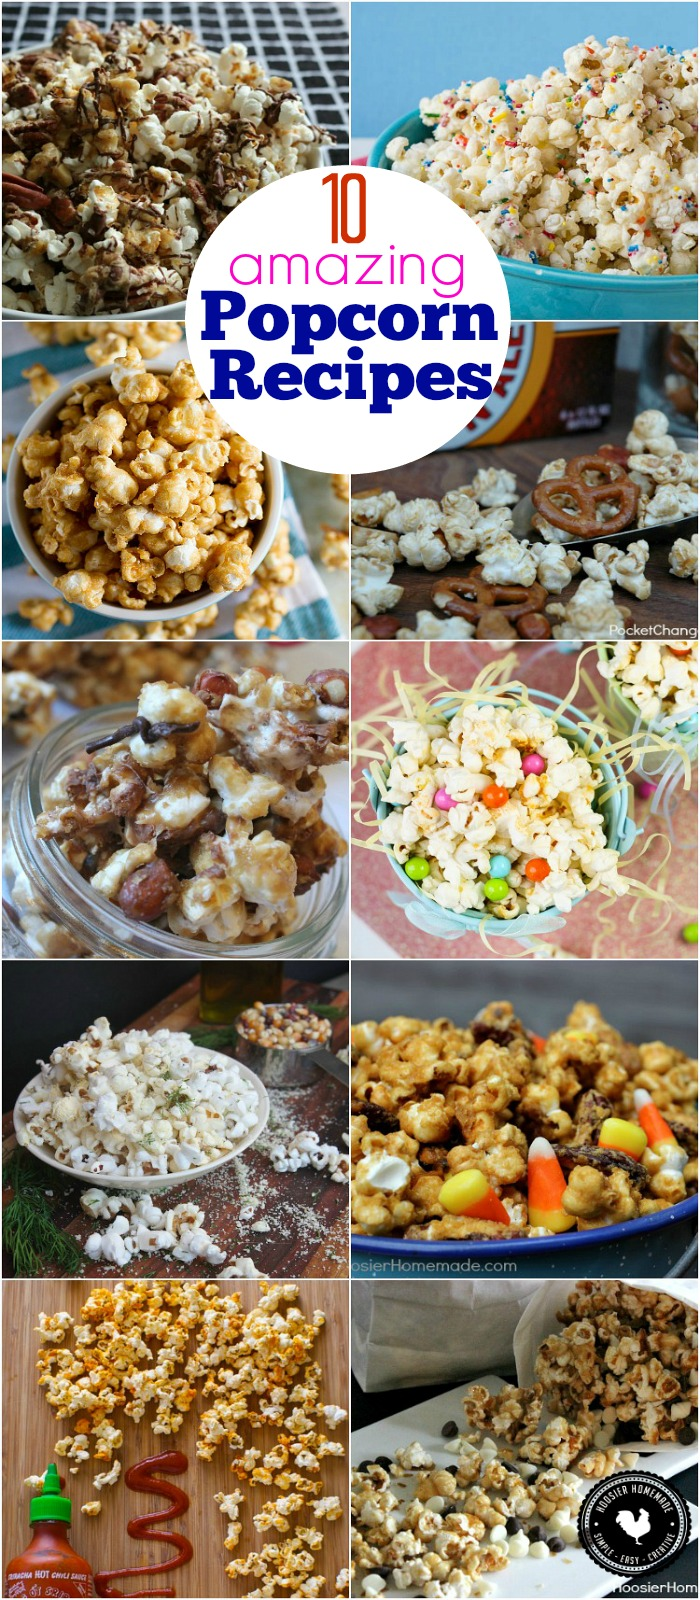 Who doesn't LOVE popcorn? It's the perfect snack any time of day! These 10 amazing Popcorn Recipes are sure to please even the pickiest snacker! Be sure to save the recipes by pinning to your Recipe Board!